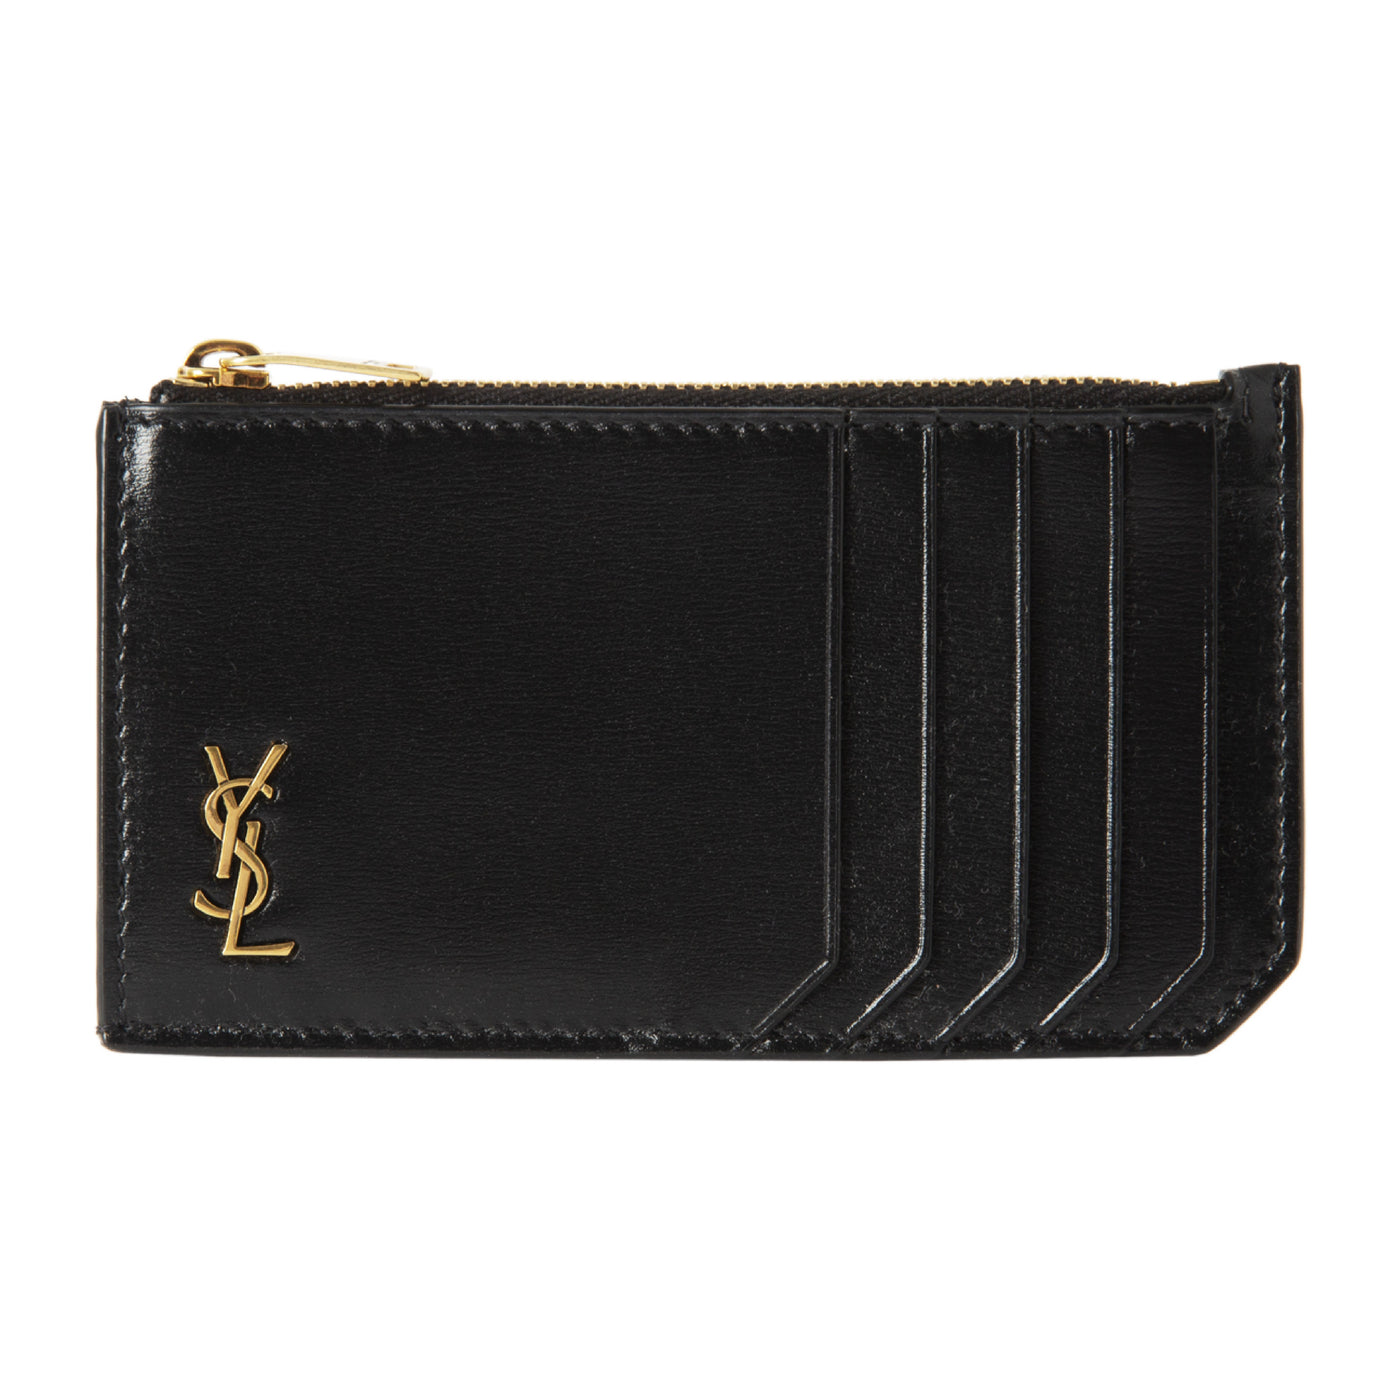 Load image into Gallery viewer, SAINT LAURENT CARDCASE BLACK